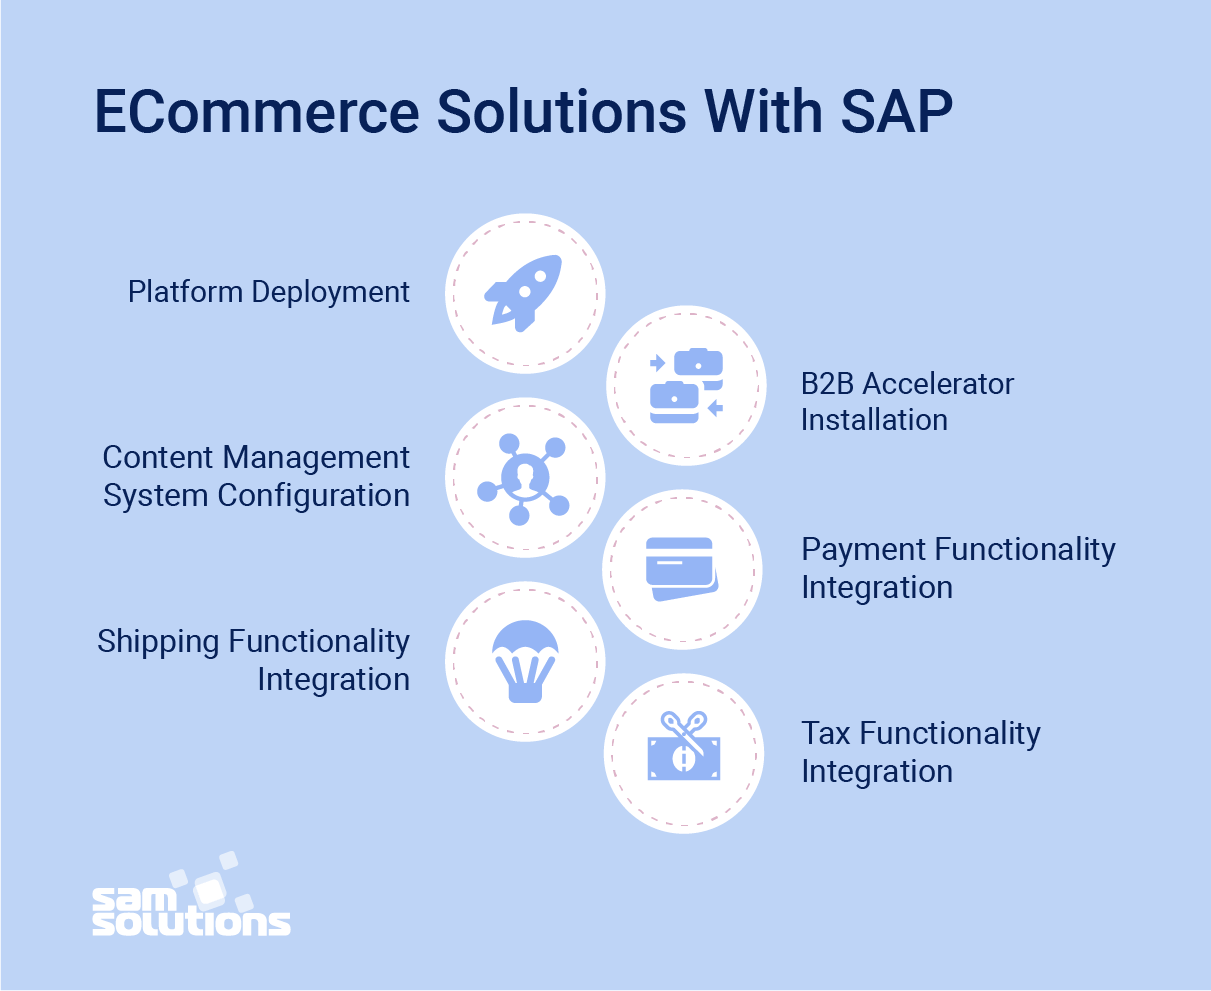 Developing-eCommerce-Solutions-With-SAP-image